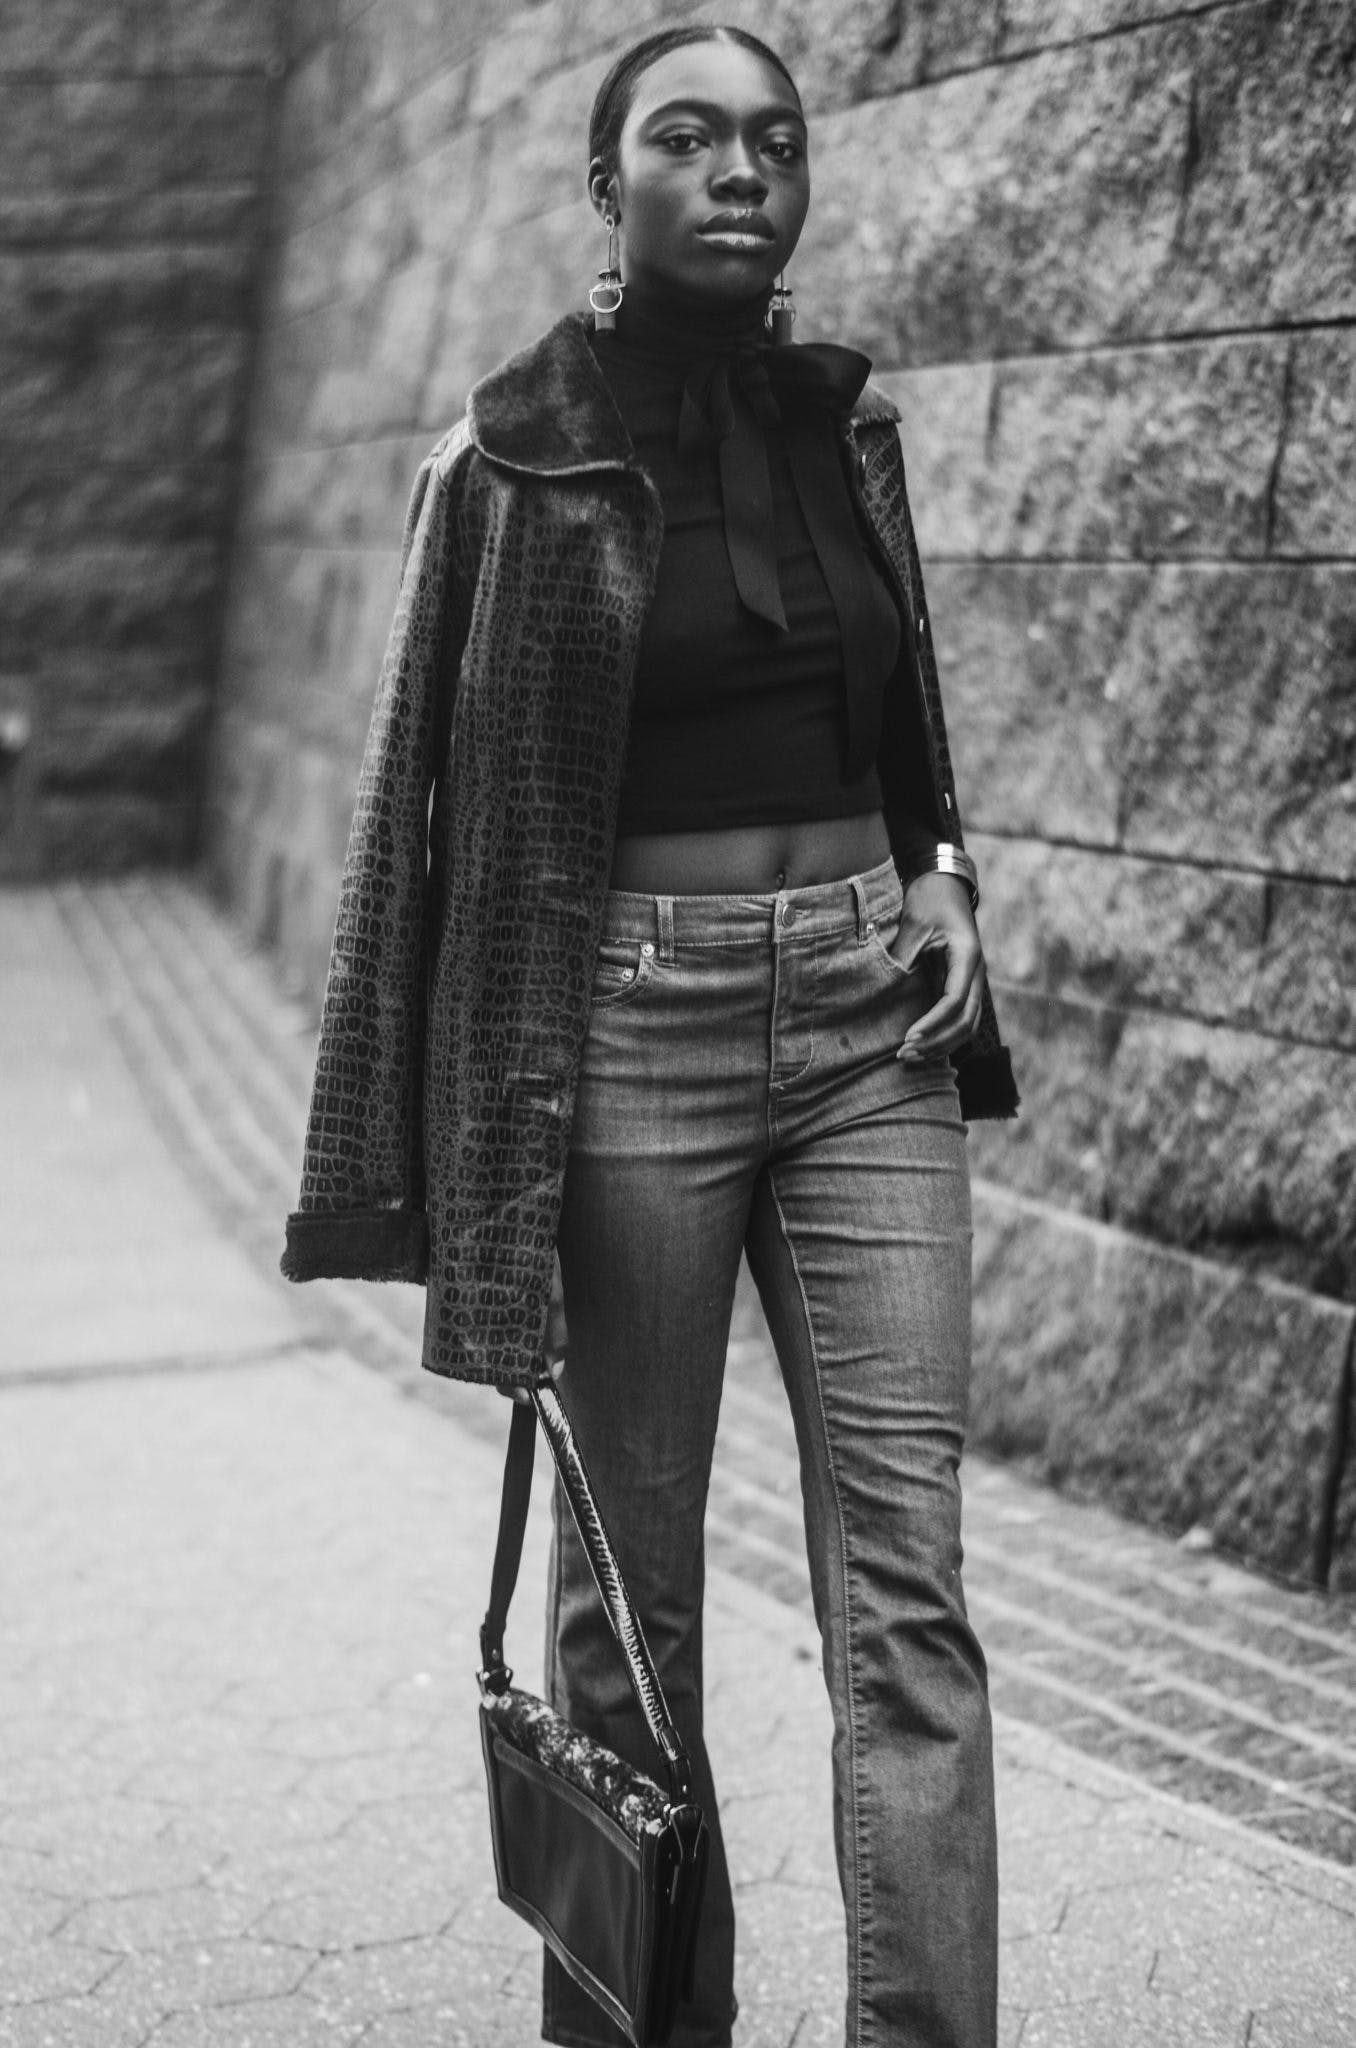 Woman in Jacket, Crop Top, and Pants Holding Bag